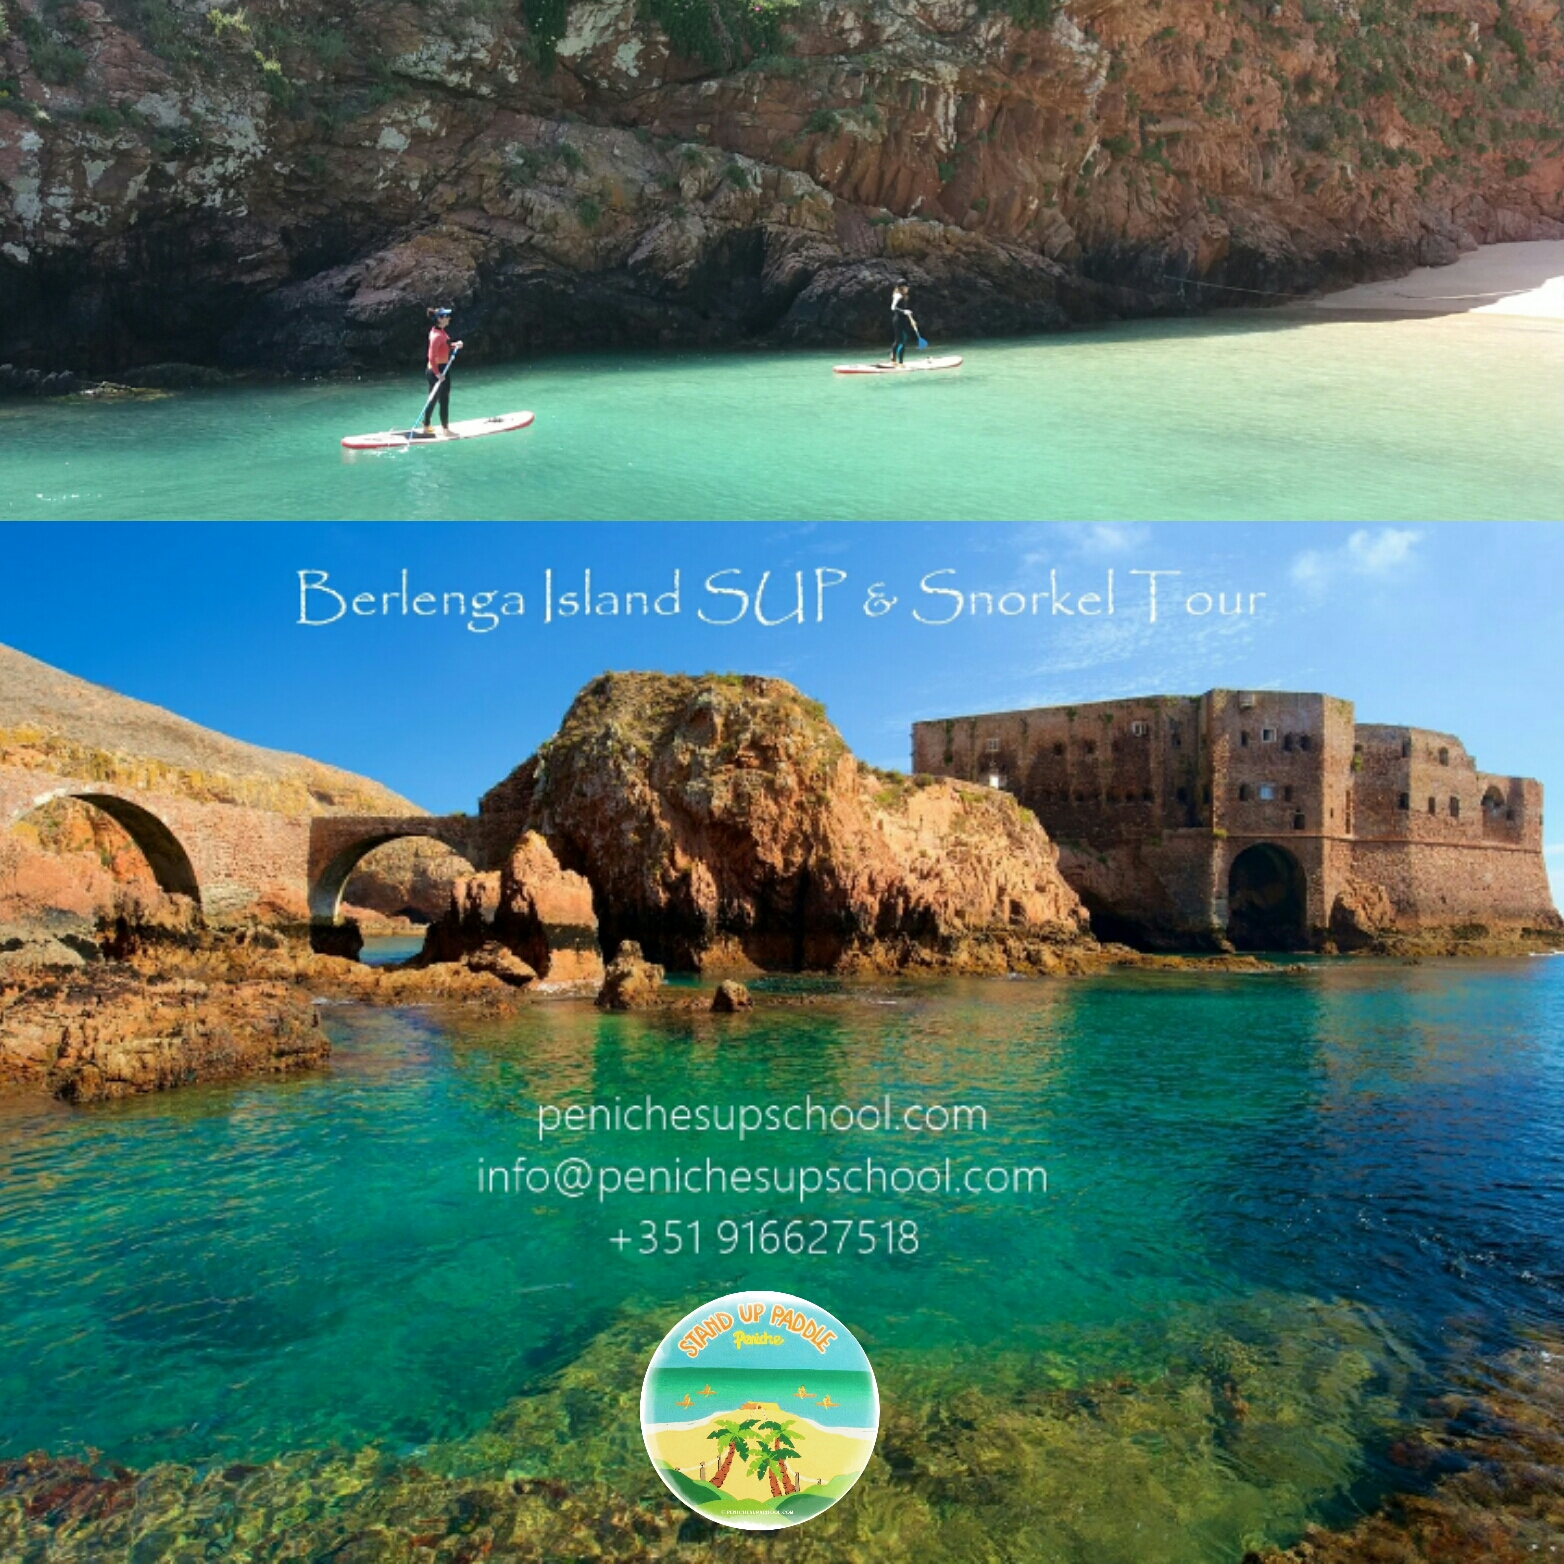 Peniche SUP school | Stand Up Paddle, Surf & More